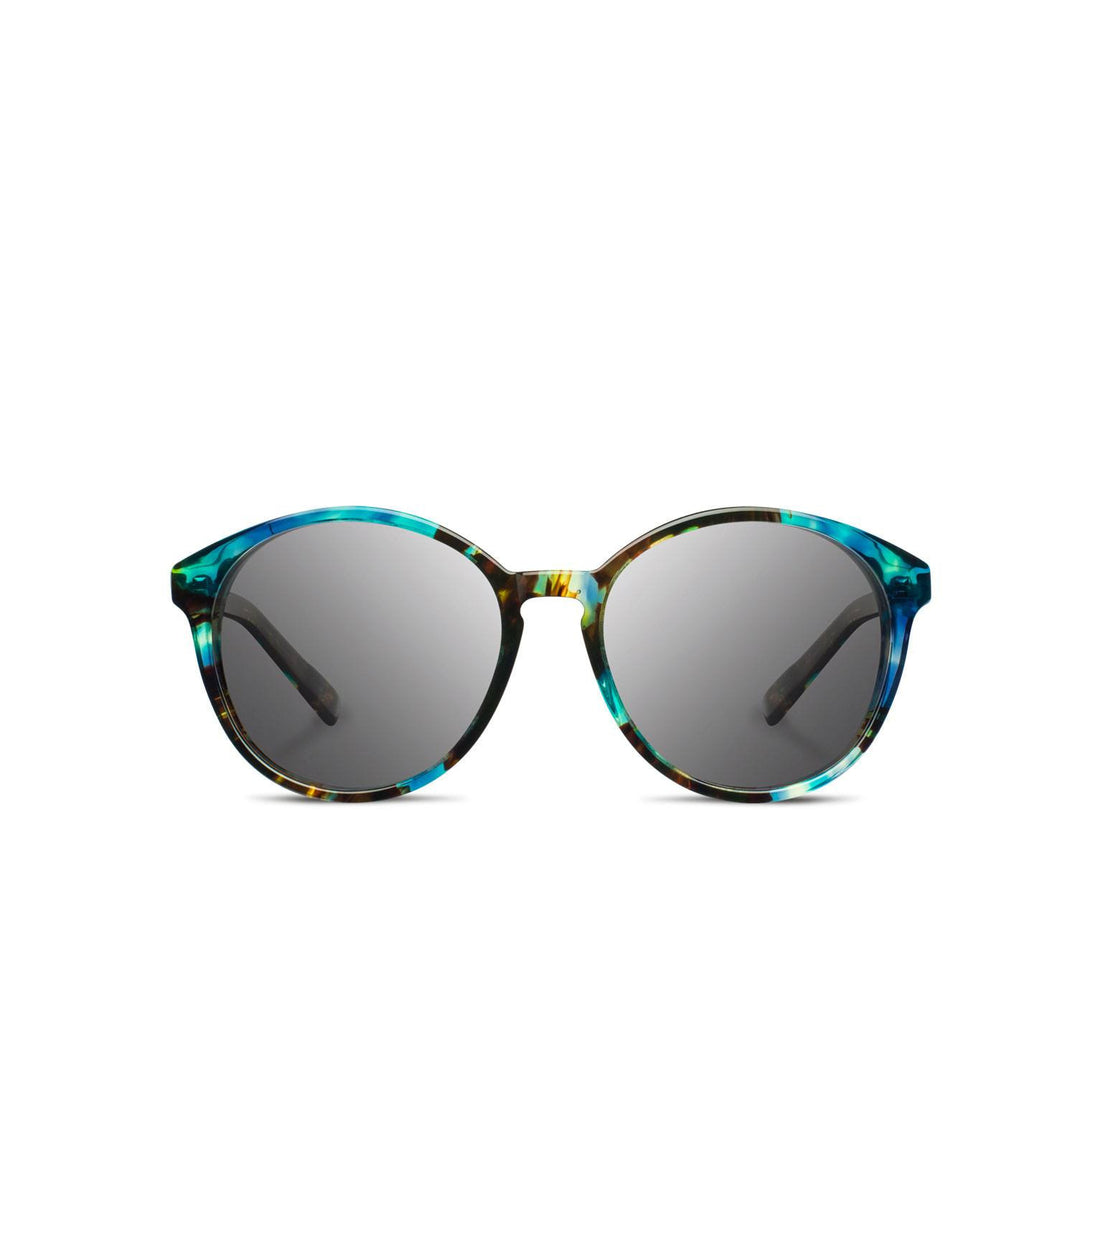 Shwood Bailey - Accessories: Eyewear - Iron and Resin